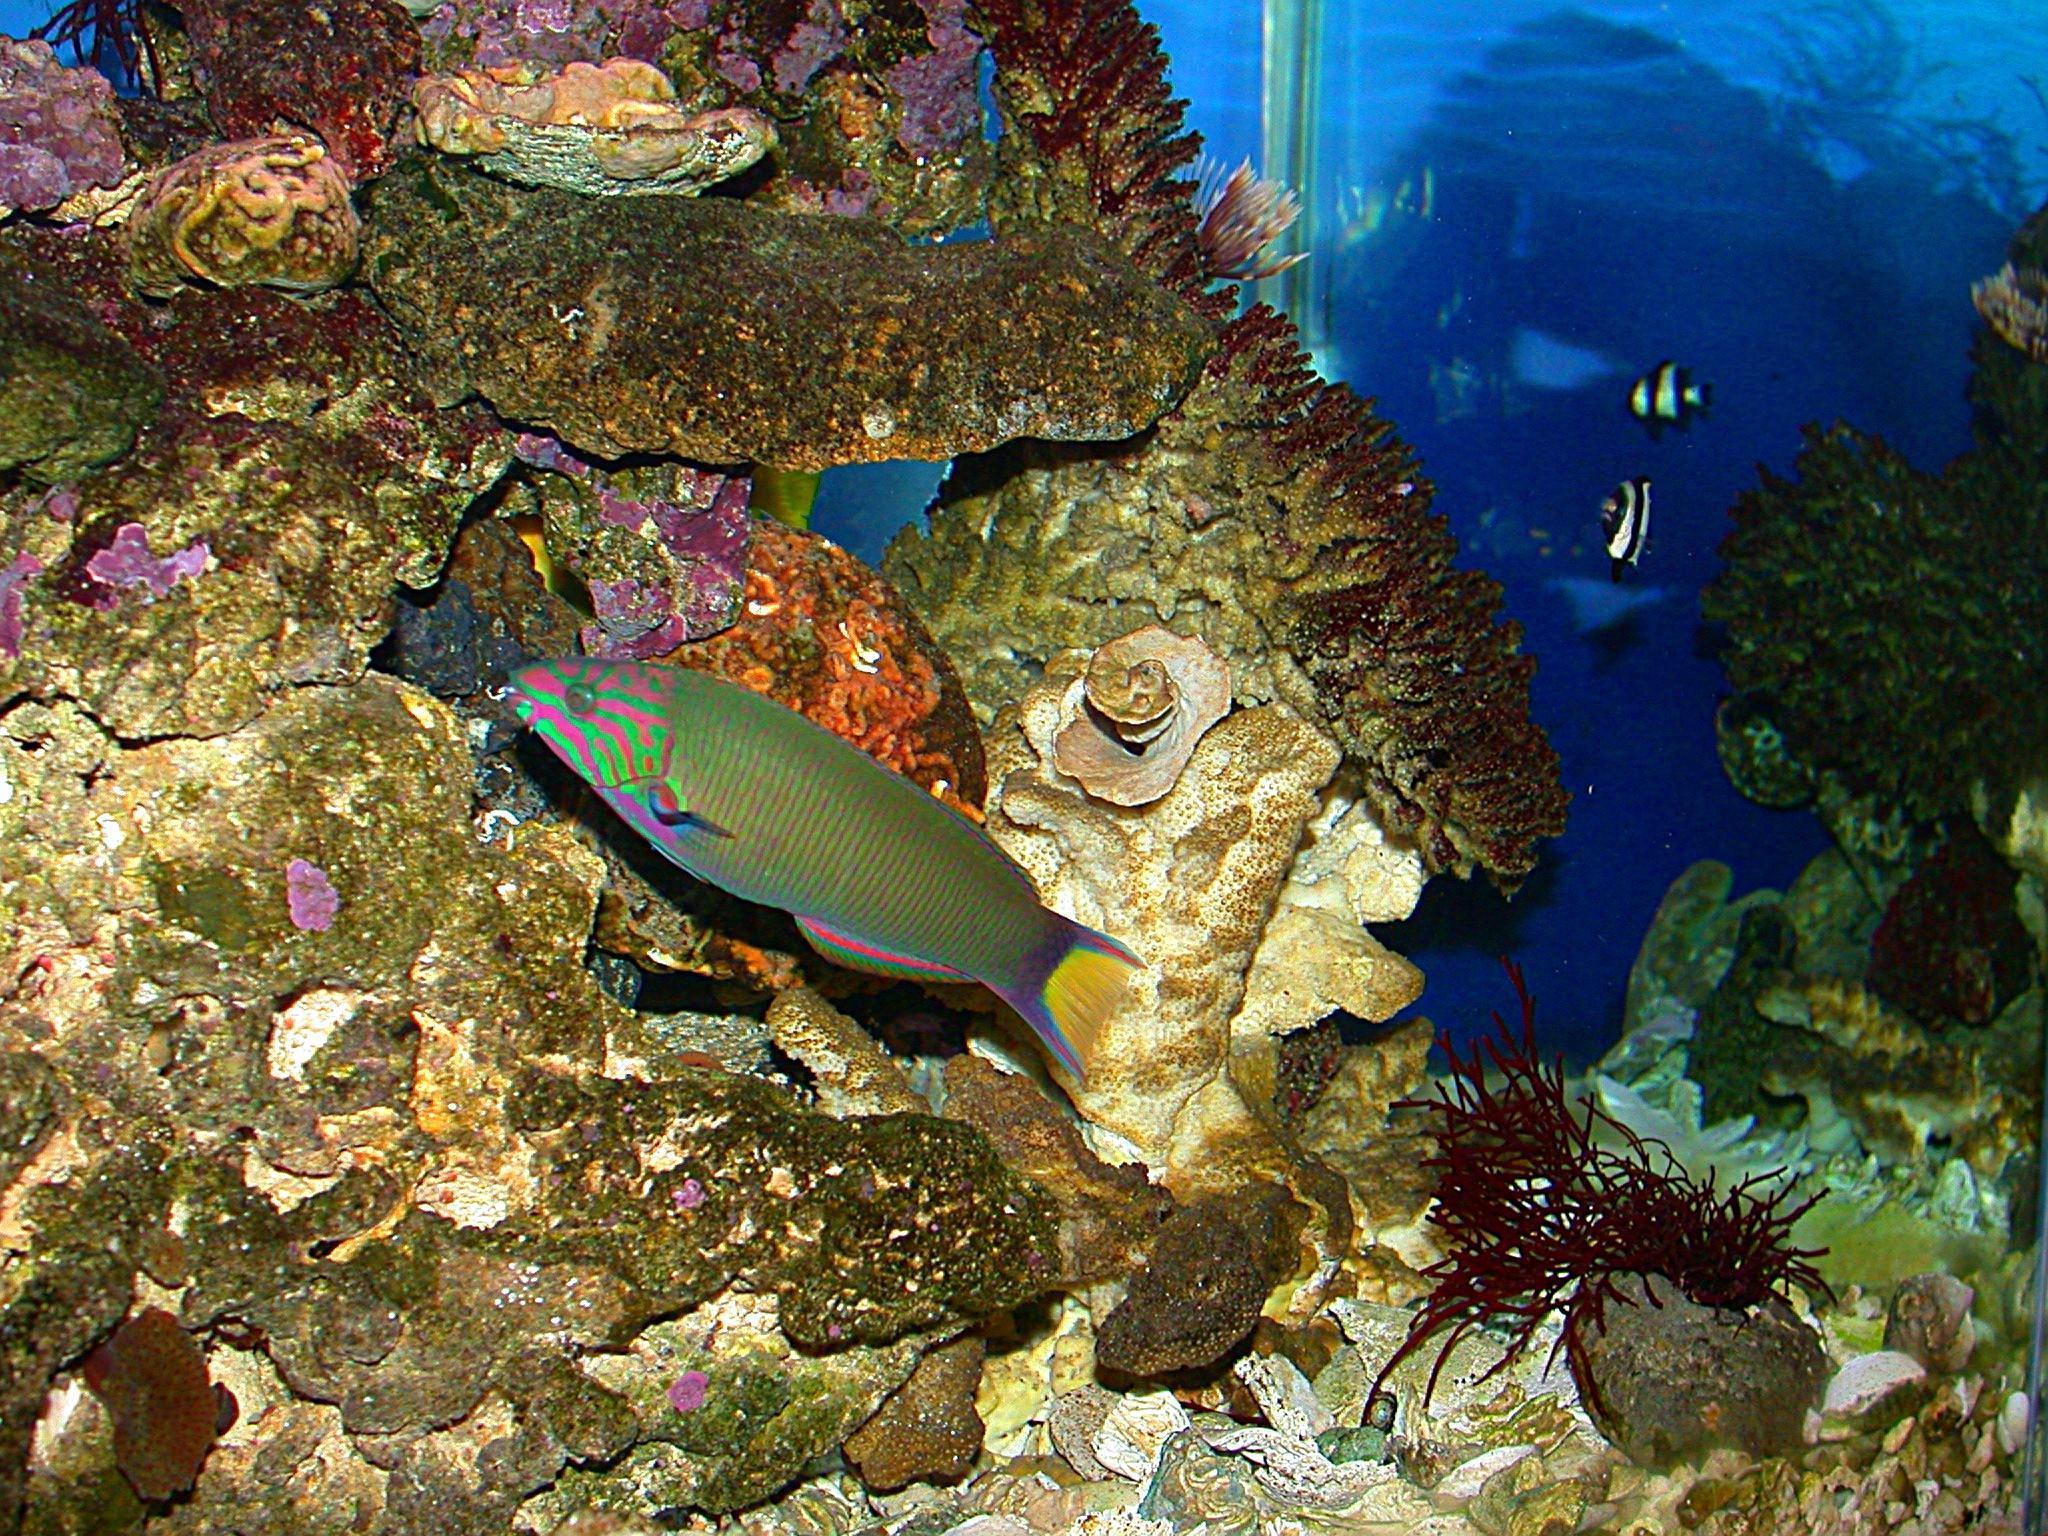 Tropical fish wallpaper fish wallpaper 5413020 fanpop for Tropical aquarium fish